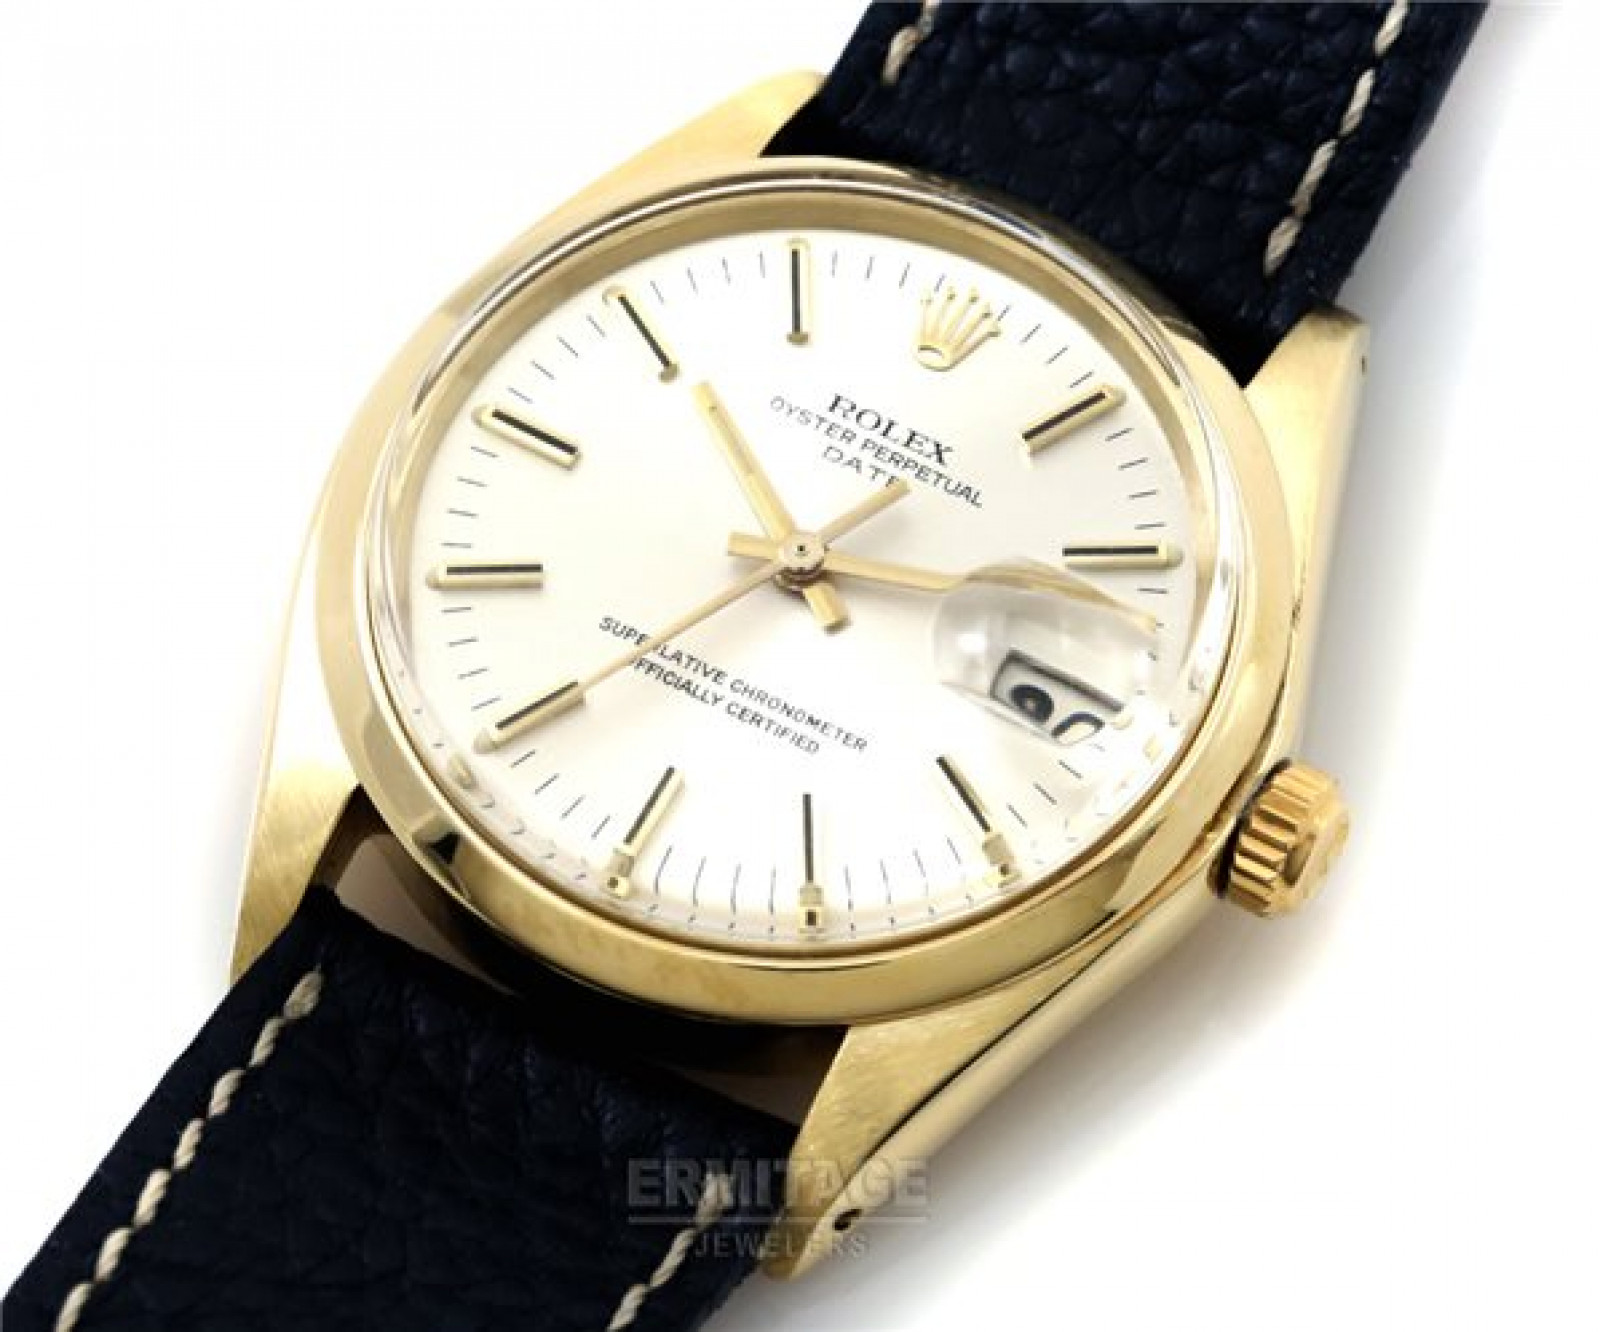 Vintage Gold Rolex Date 1503 Year 1972 with Grey Dial